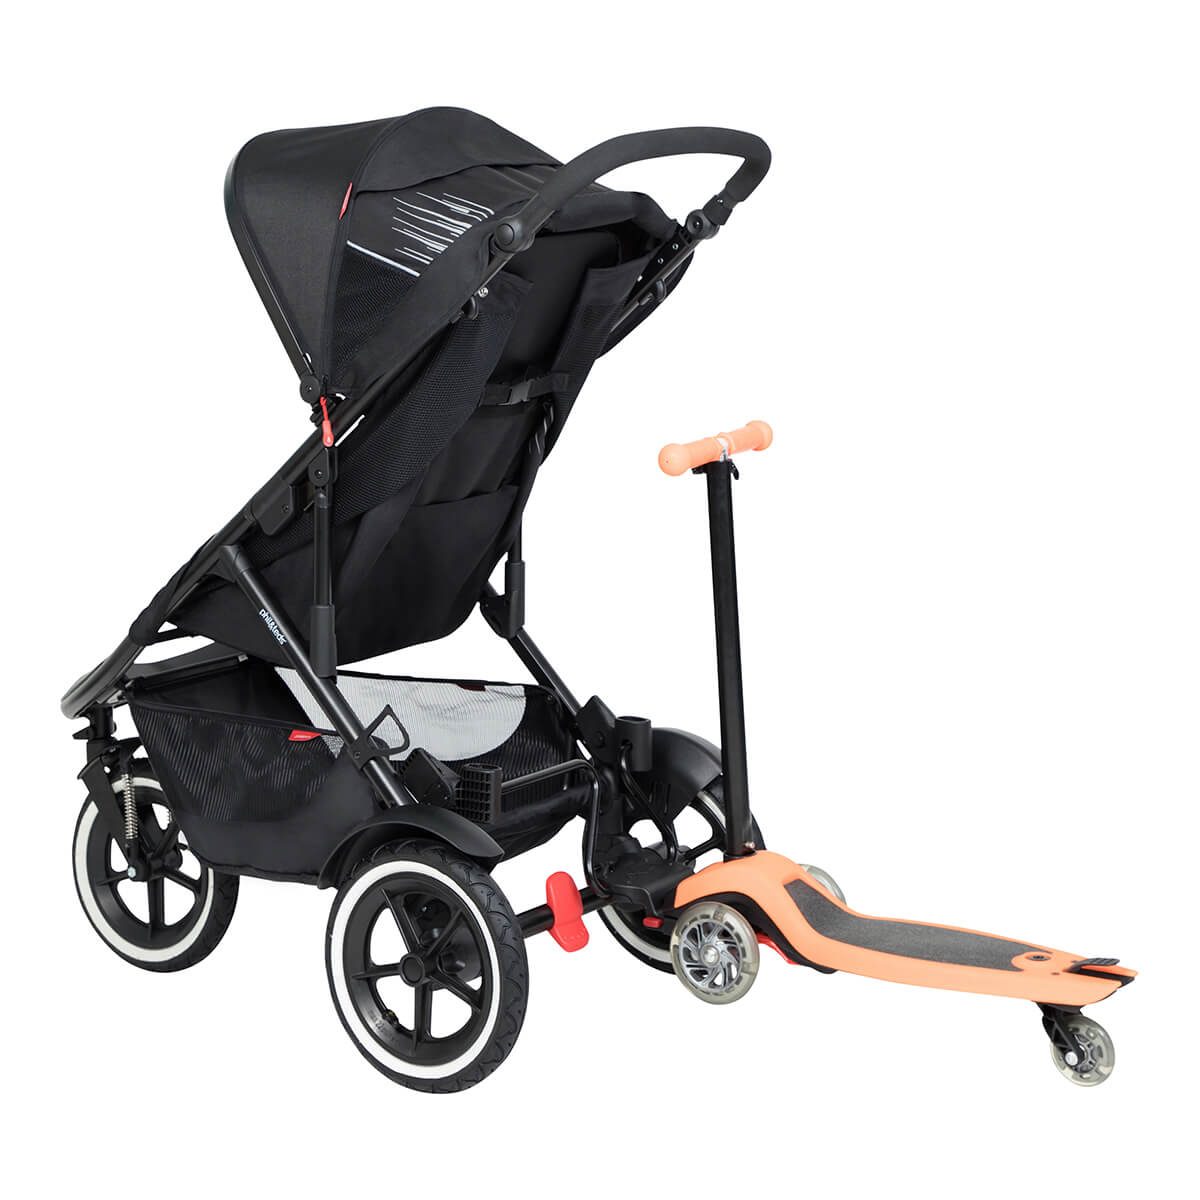 https://cdn.accentuate.io/4509898735693/19466204315842/philteds-sport-buggy-with-freerider-stroller-board-in-rear-v1626485359957.jpg?1200x1200